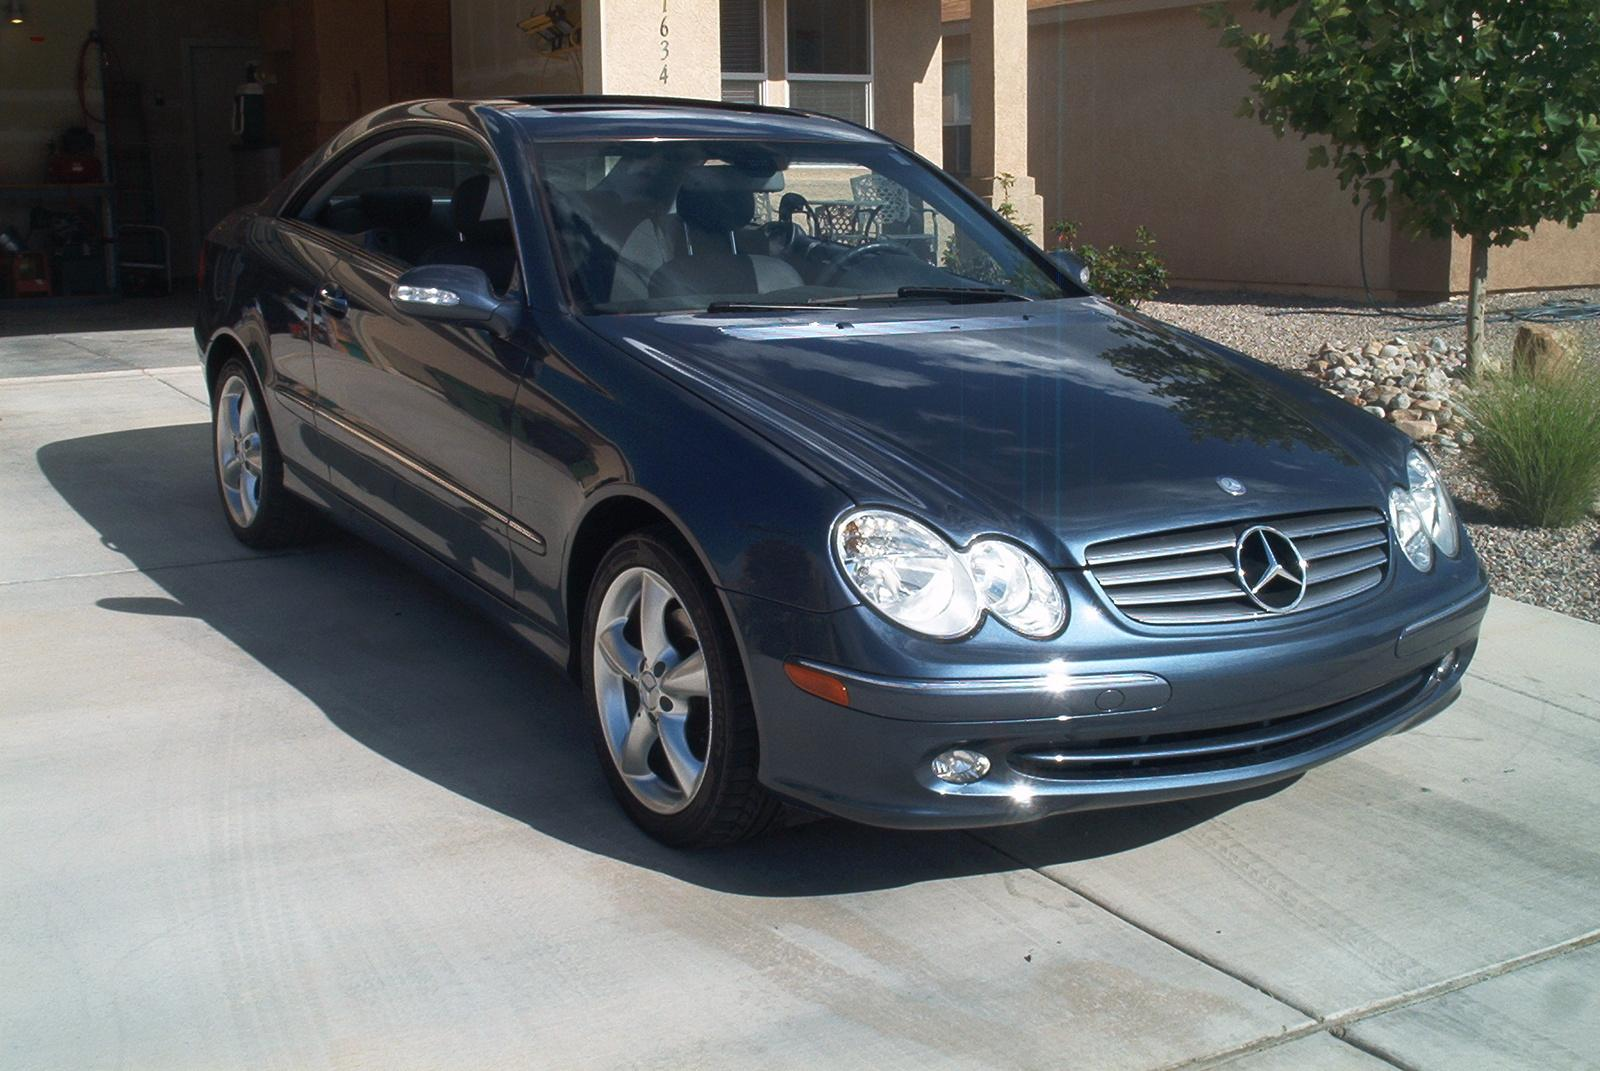 2003 mercedes benz clk class information and photos for 2003 mercedes benz clk 320